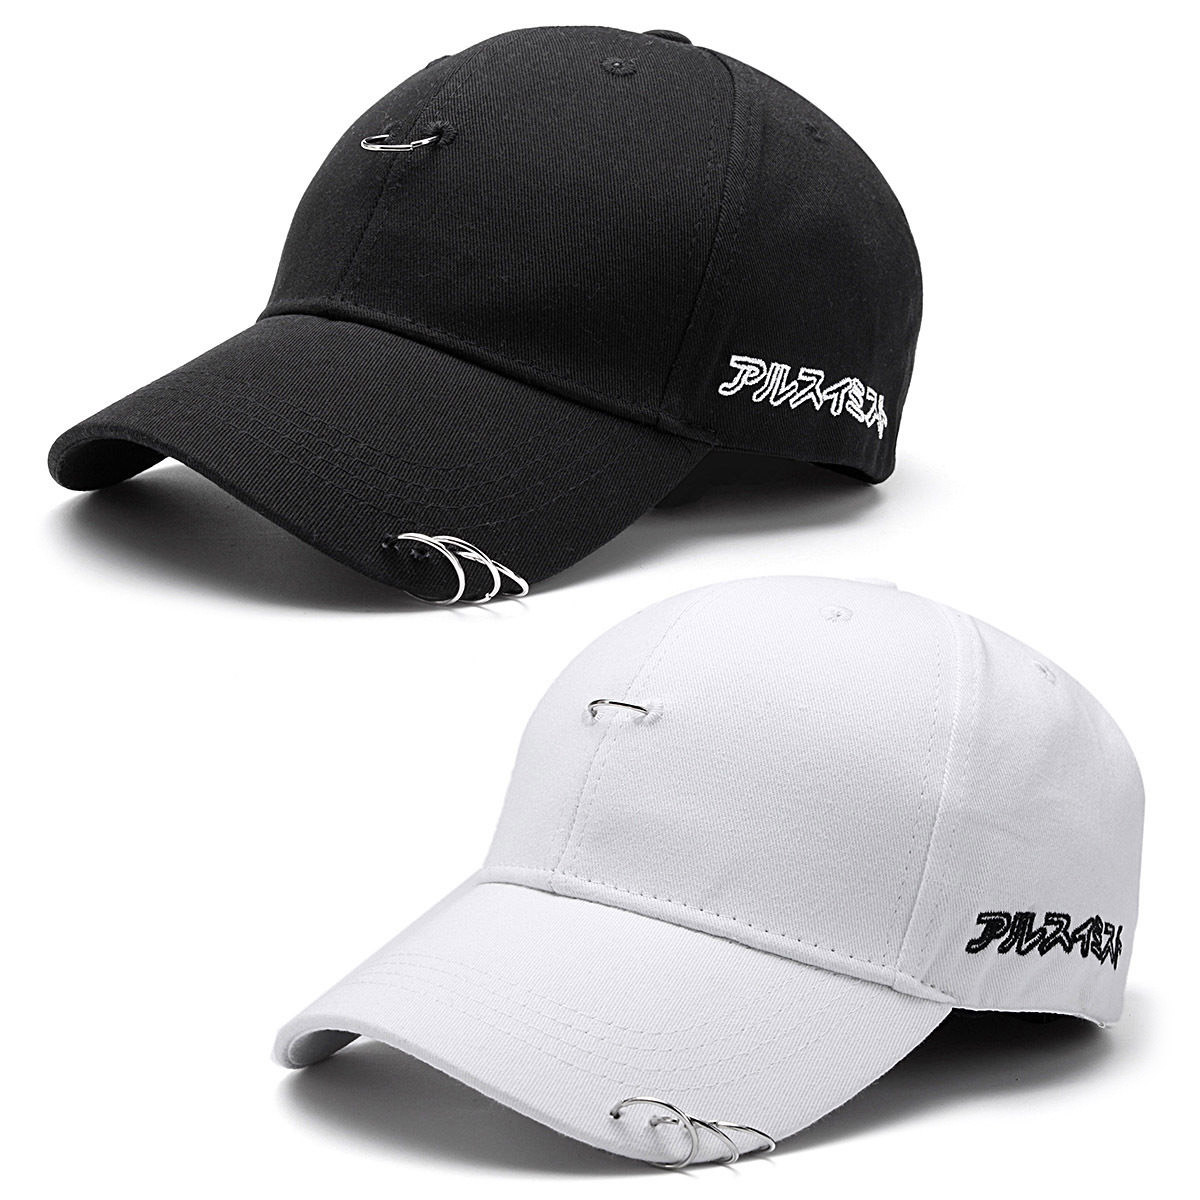 Unisex Solid Hats Ring Hip Hop Curved Strapback Baseball Cap Men Women Snapback Caps Baseball Hat casquette Gorras 2016 new new embroidered hold onto your friends casquette polos baseball cap strapback black white pink for men women cap